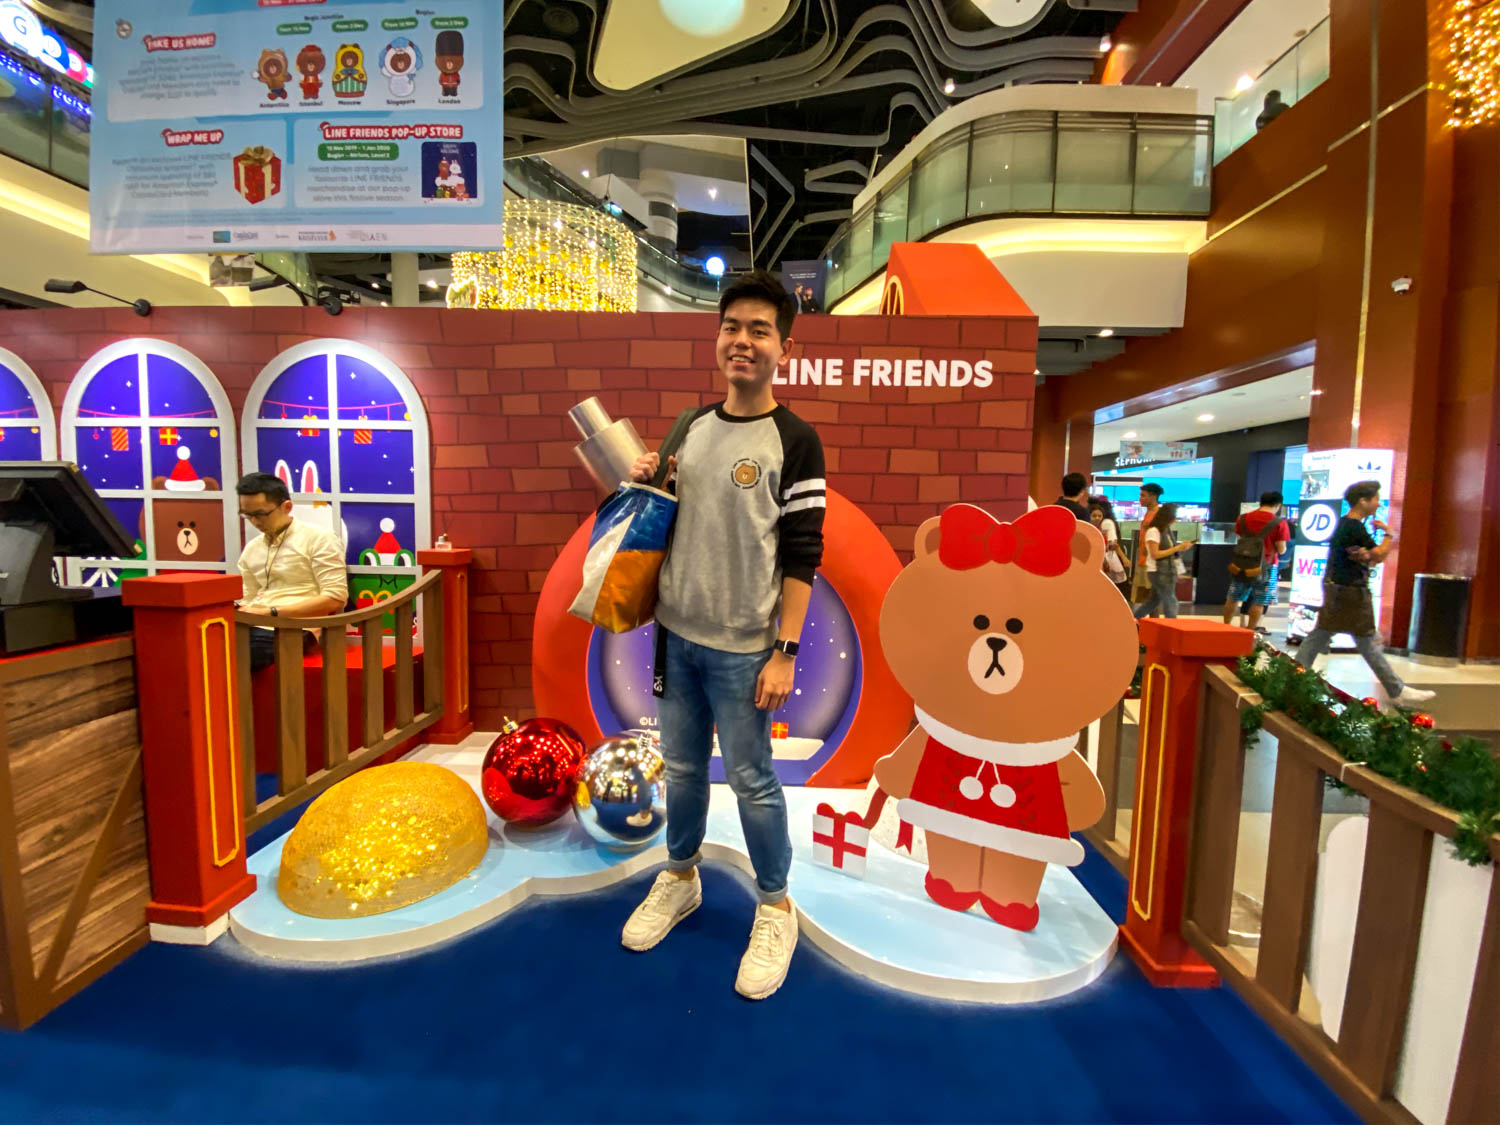 LINE-FRIENDS-SINGAPORE-darrenbloggie_1744